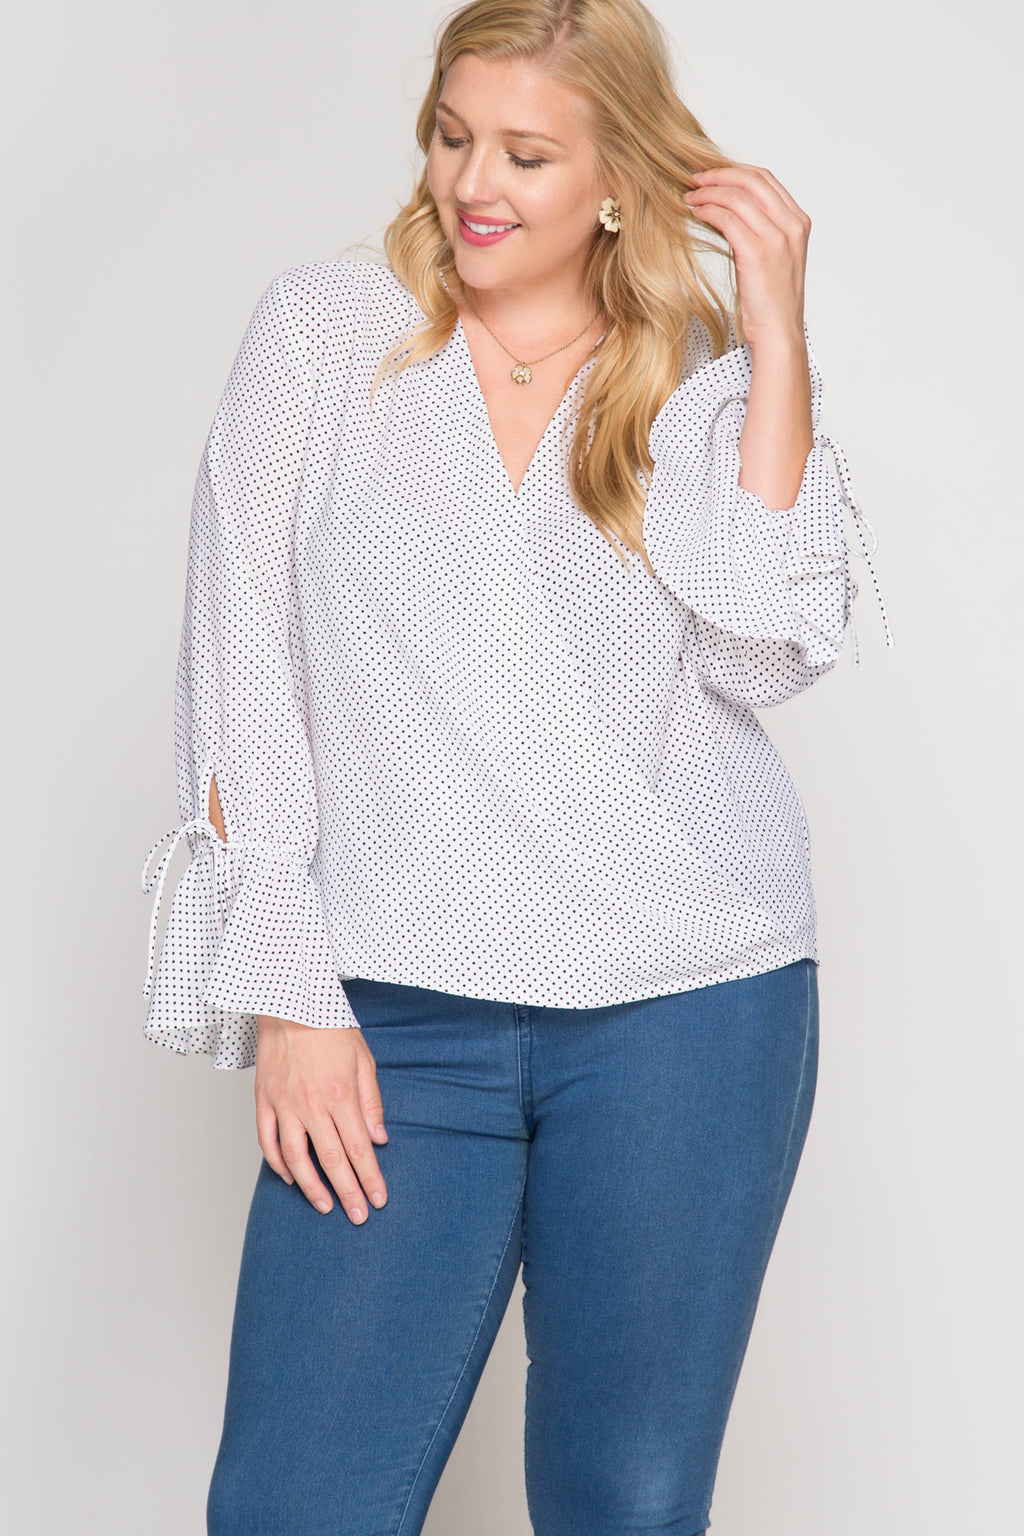 Dotty Top | Plus